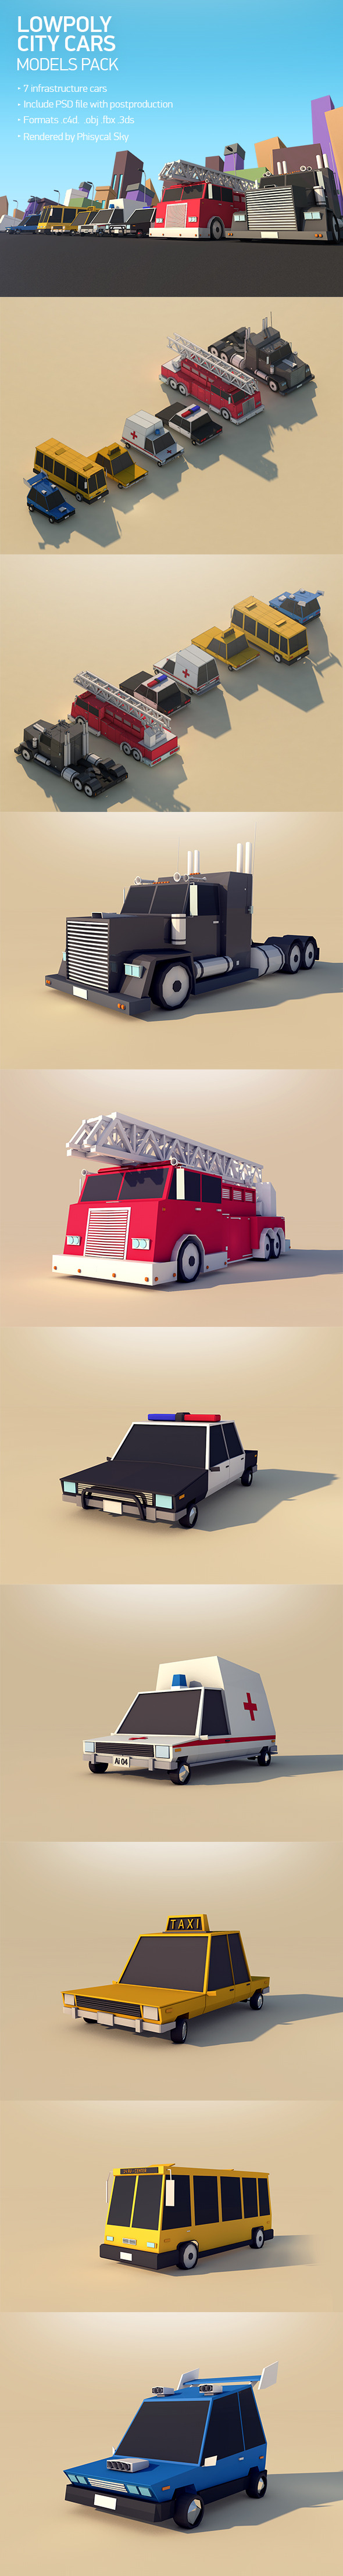 Low Poly City Cars Pack 1 - 3DOcean Item for Sale